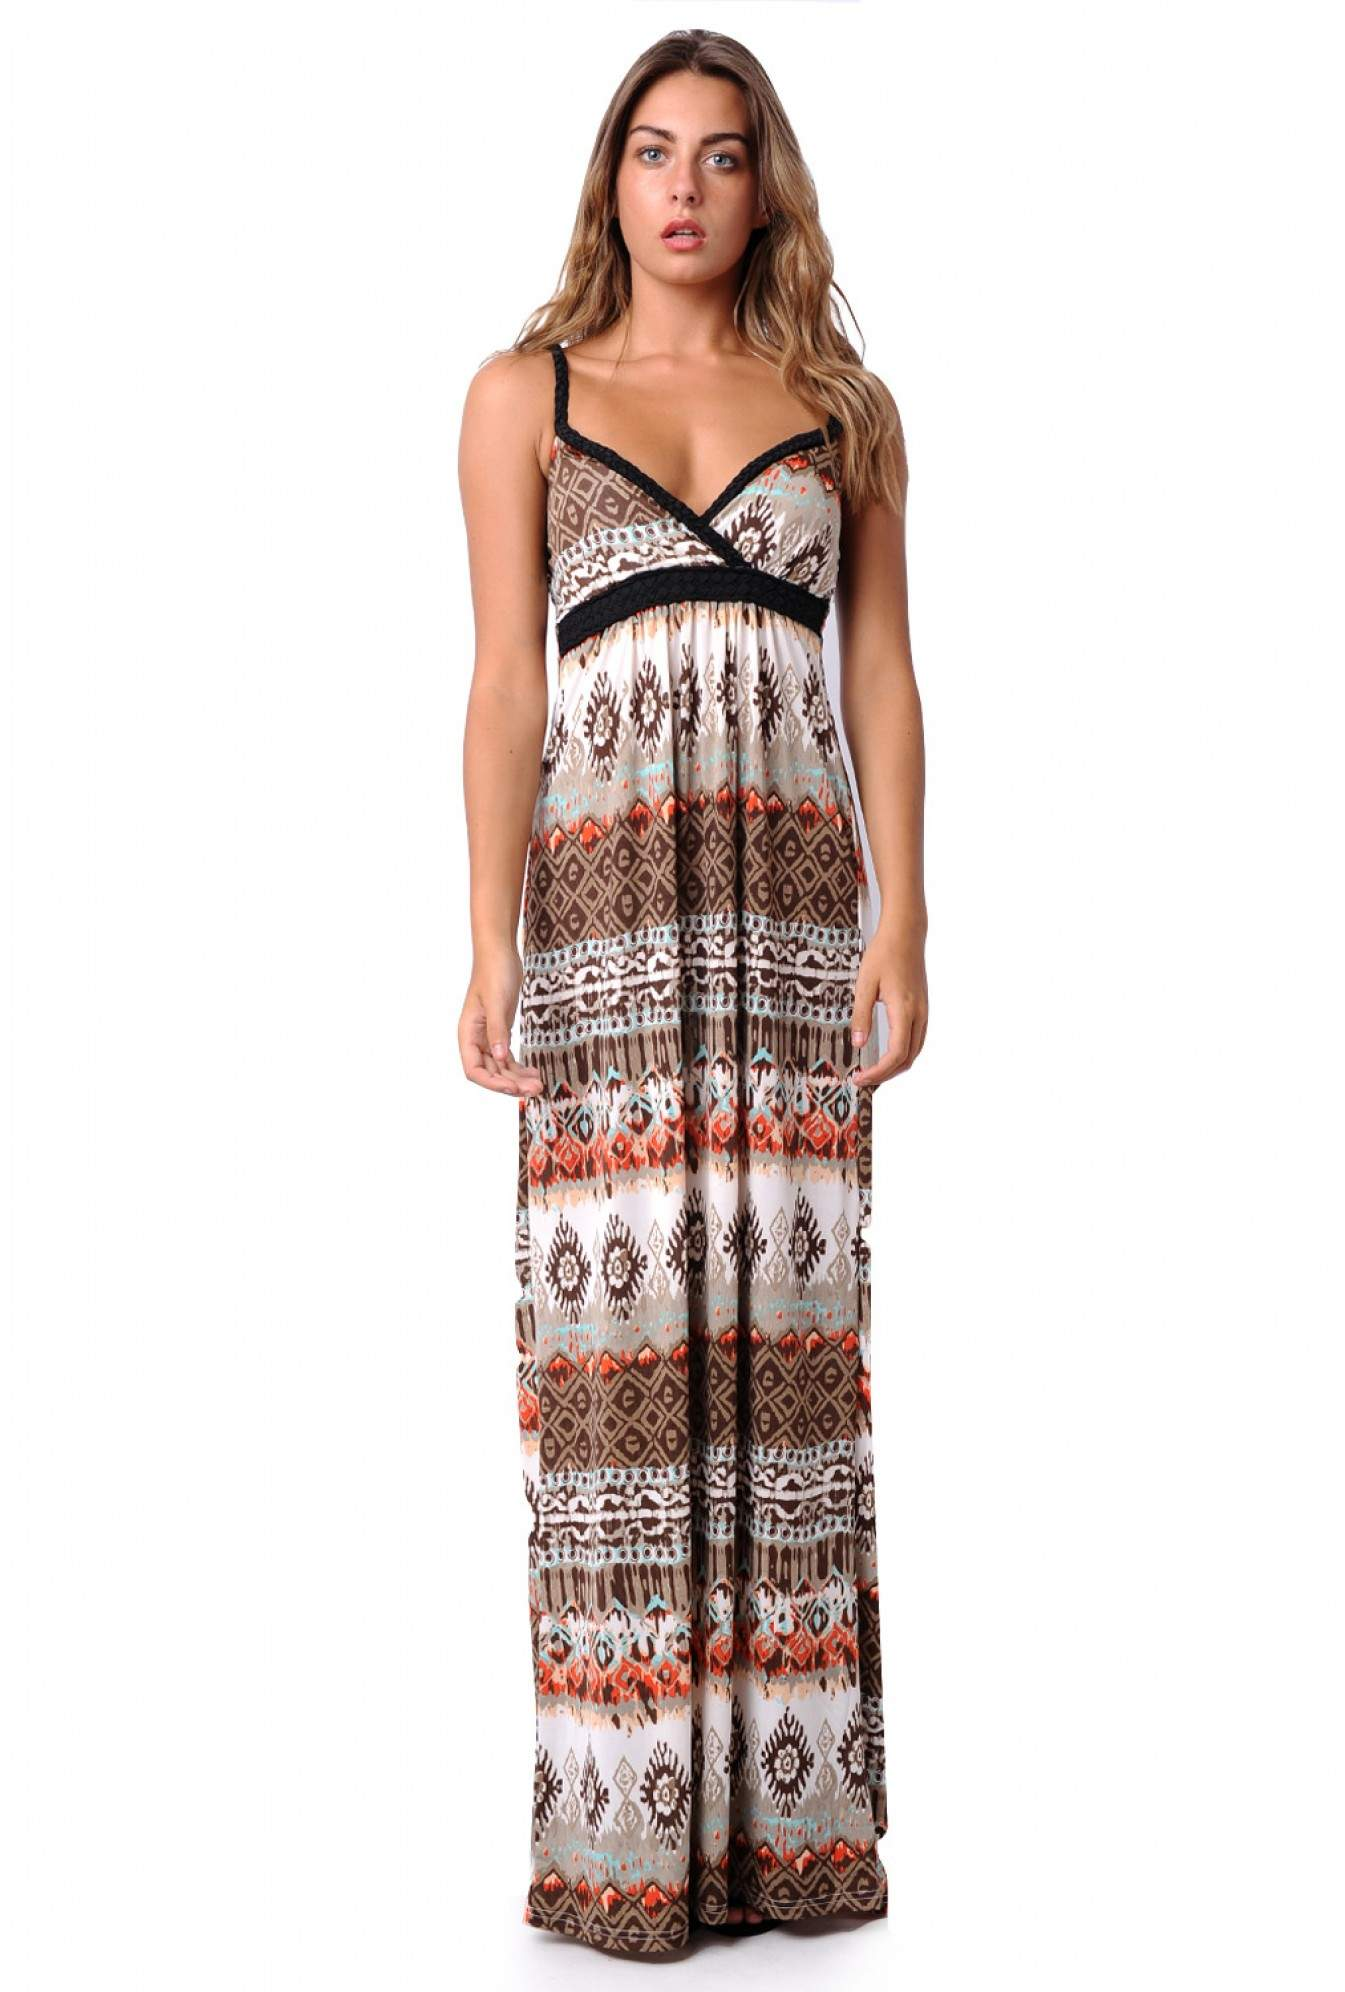 ab5a6a2a80a5 More Views. Betsy Twisted Strap Tribal Maxi Dress in Coffee